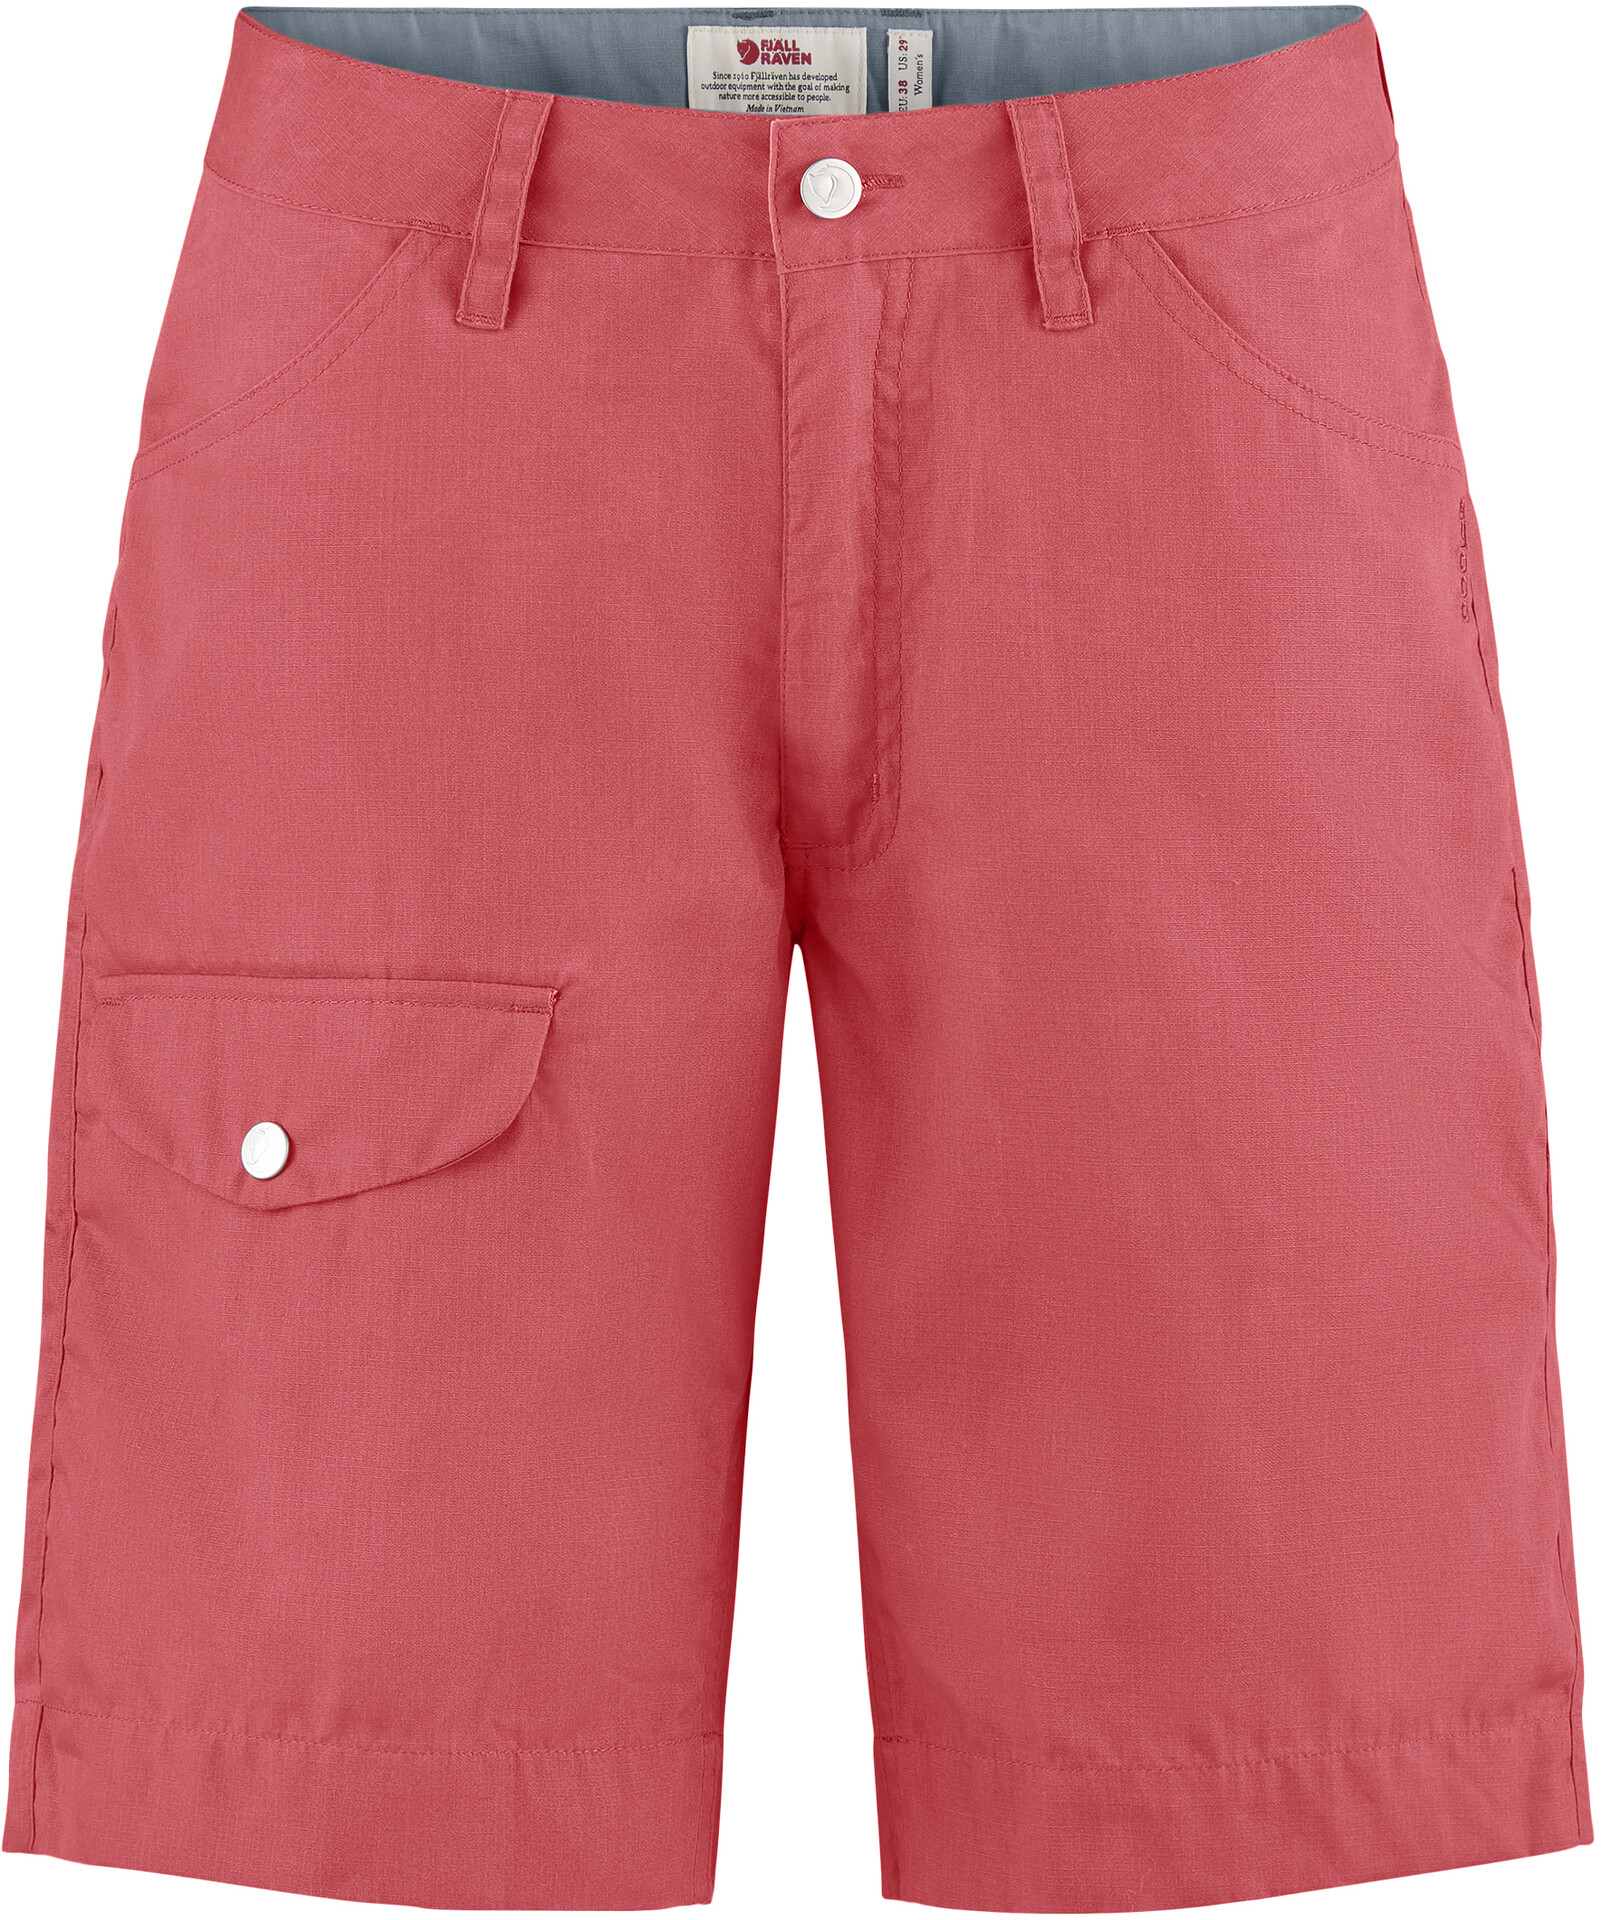 Fjällräven Greenland Shorts Damer, peach pink